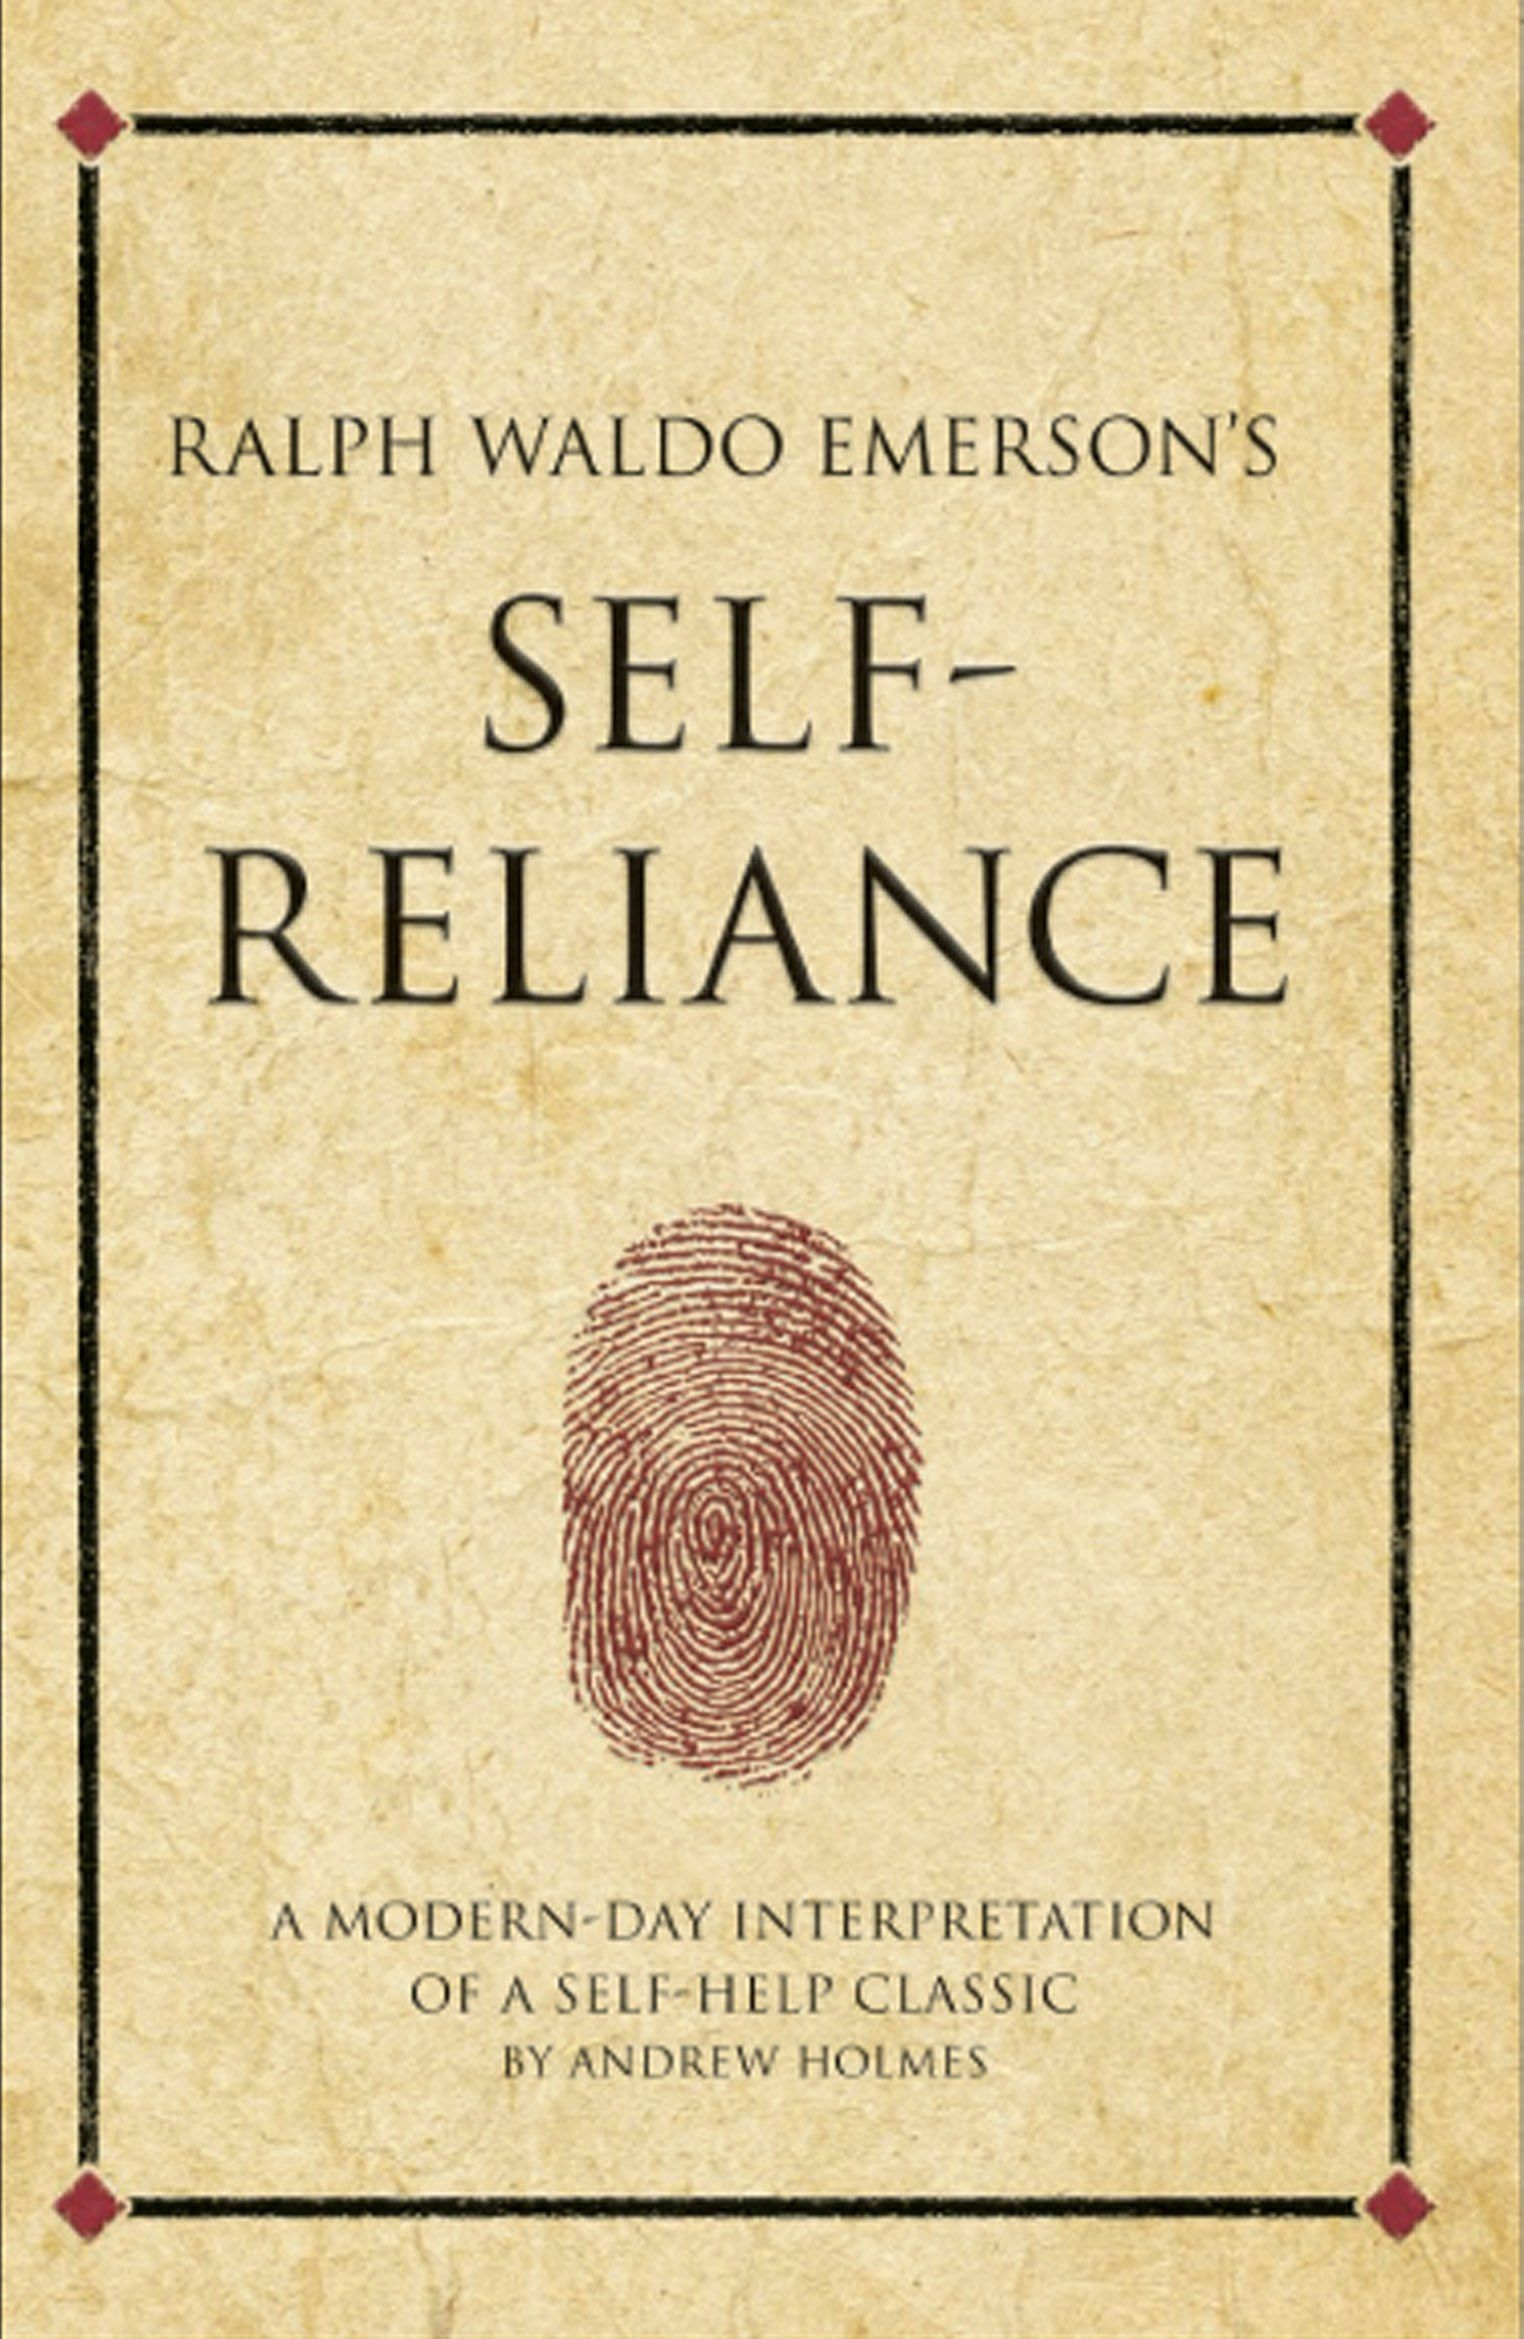 ralph waldo emerson s self reliance infinite success amazon ralph waldo emerson s self reliance infinite success amazon kindle store